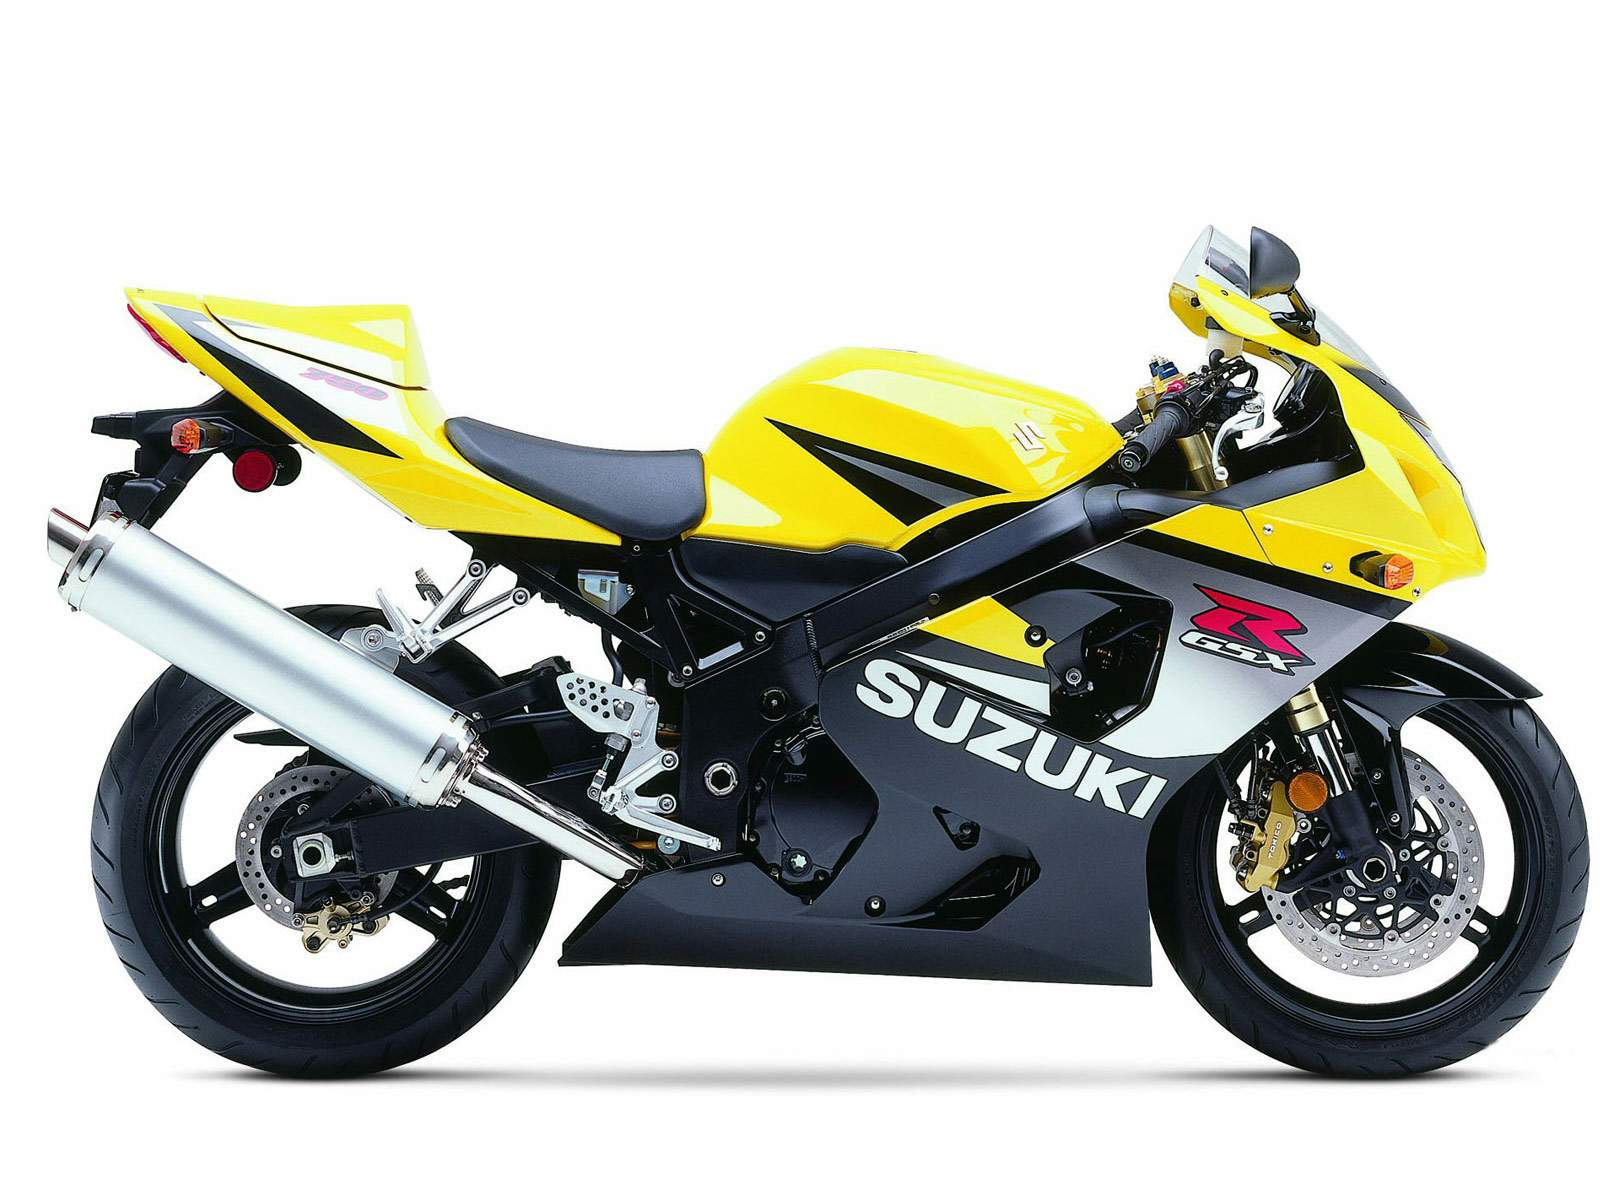 1999 Suzuki Gsxr 600 Wiring Schematics from www.motorcyclespecs.co.za